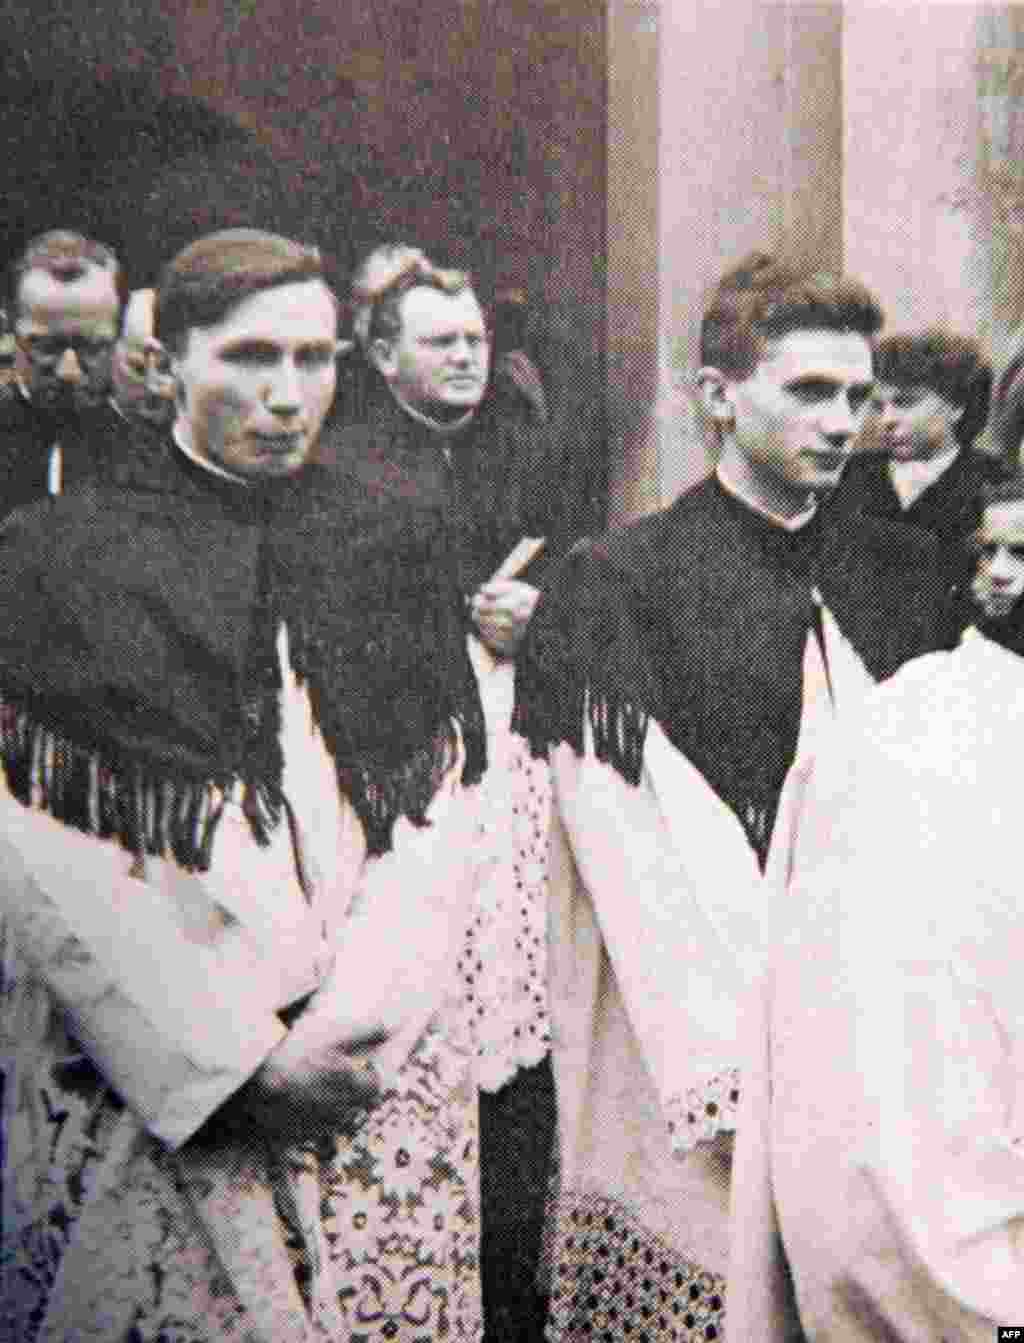 Josef Ratzinger (right) with his brother Georg during their ordination in Freising, Germany, in 1951.